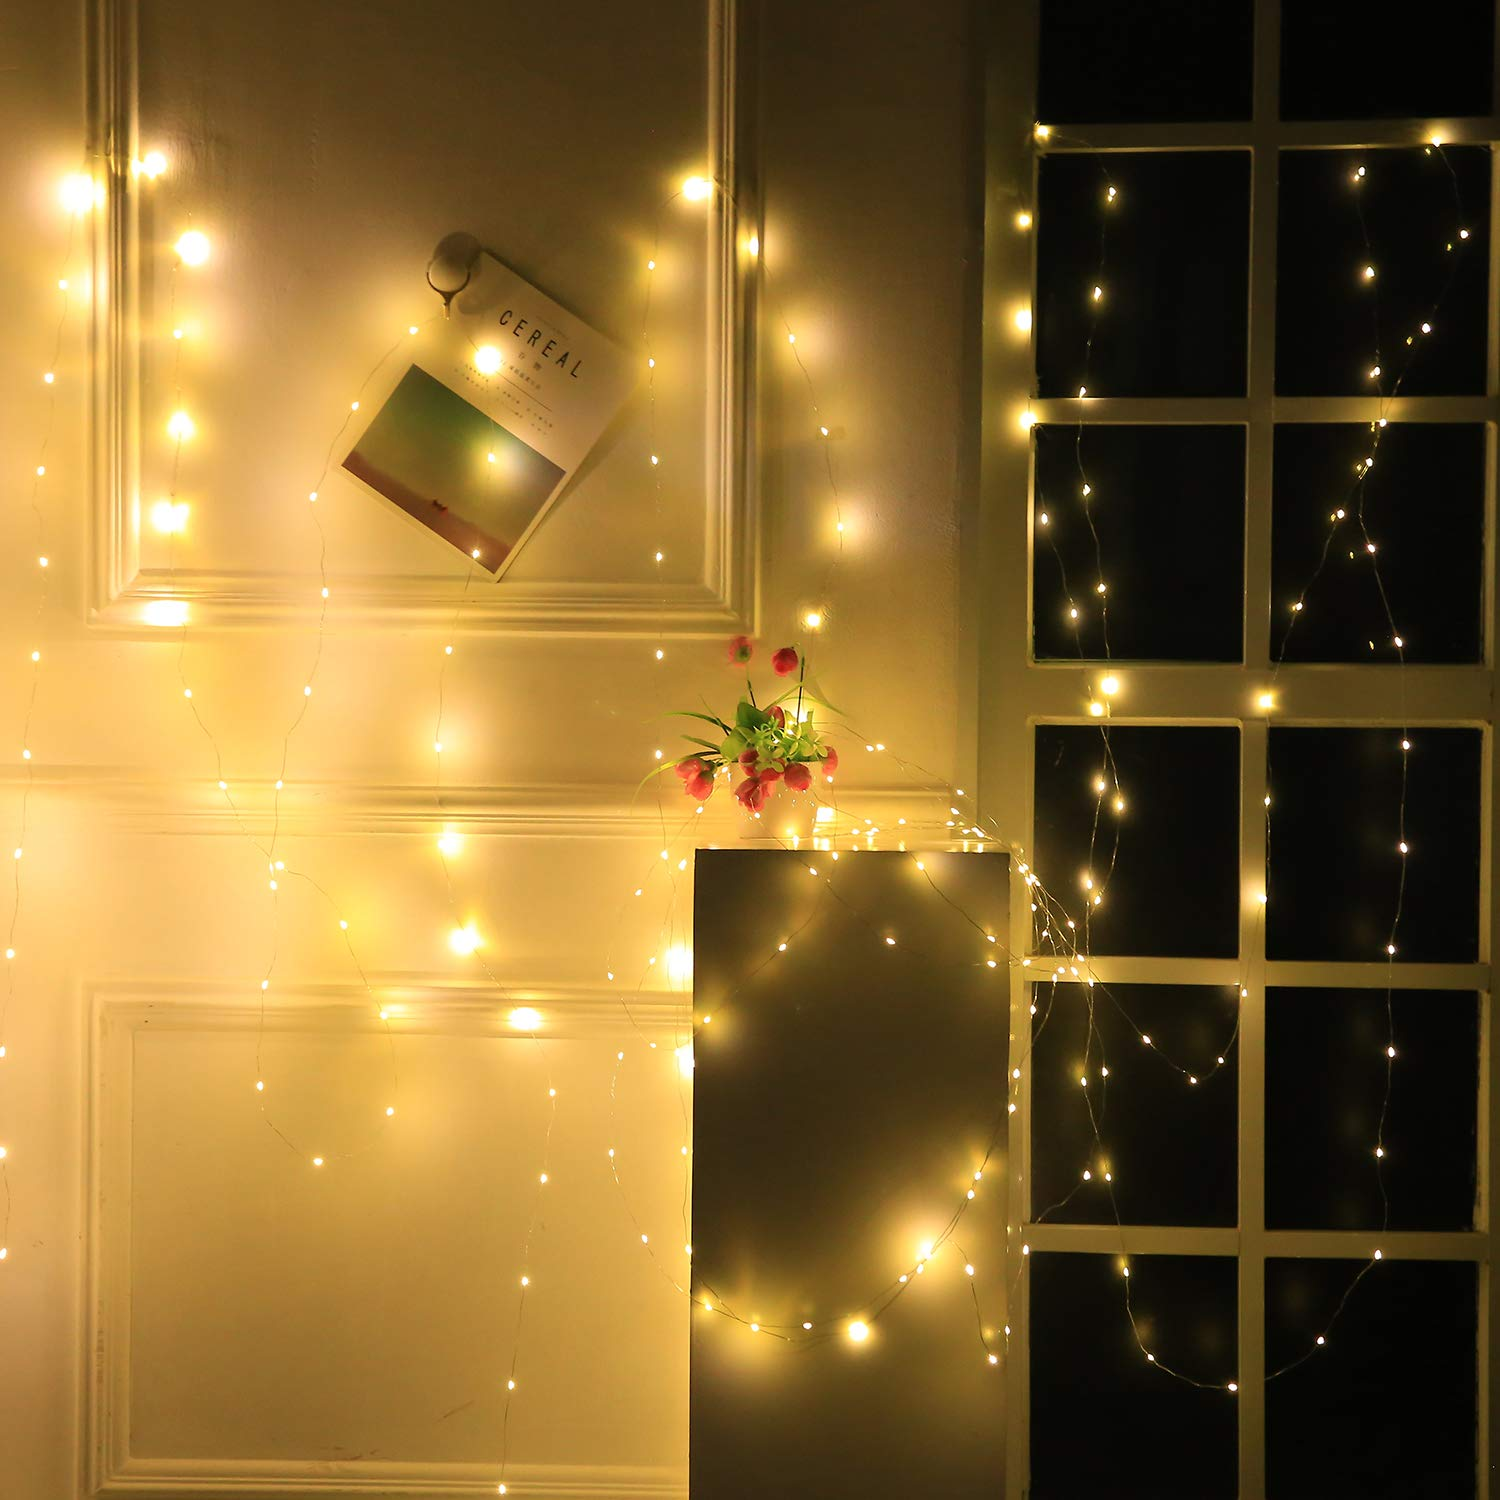 200 LED Bendable Copper Wire Lights, 8 Modes 66ft Fairy Starry Lights with USB Port and BS Plug in for Wedding Christmas Party Bedroom Indoor Outdoor Decorative (Warm White) OMGAI